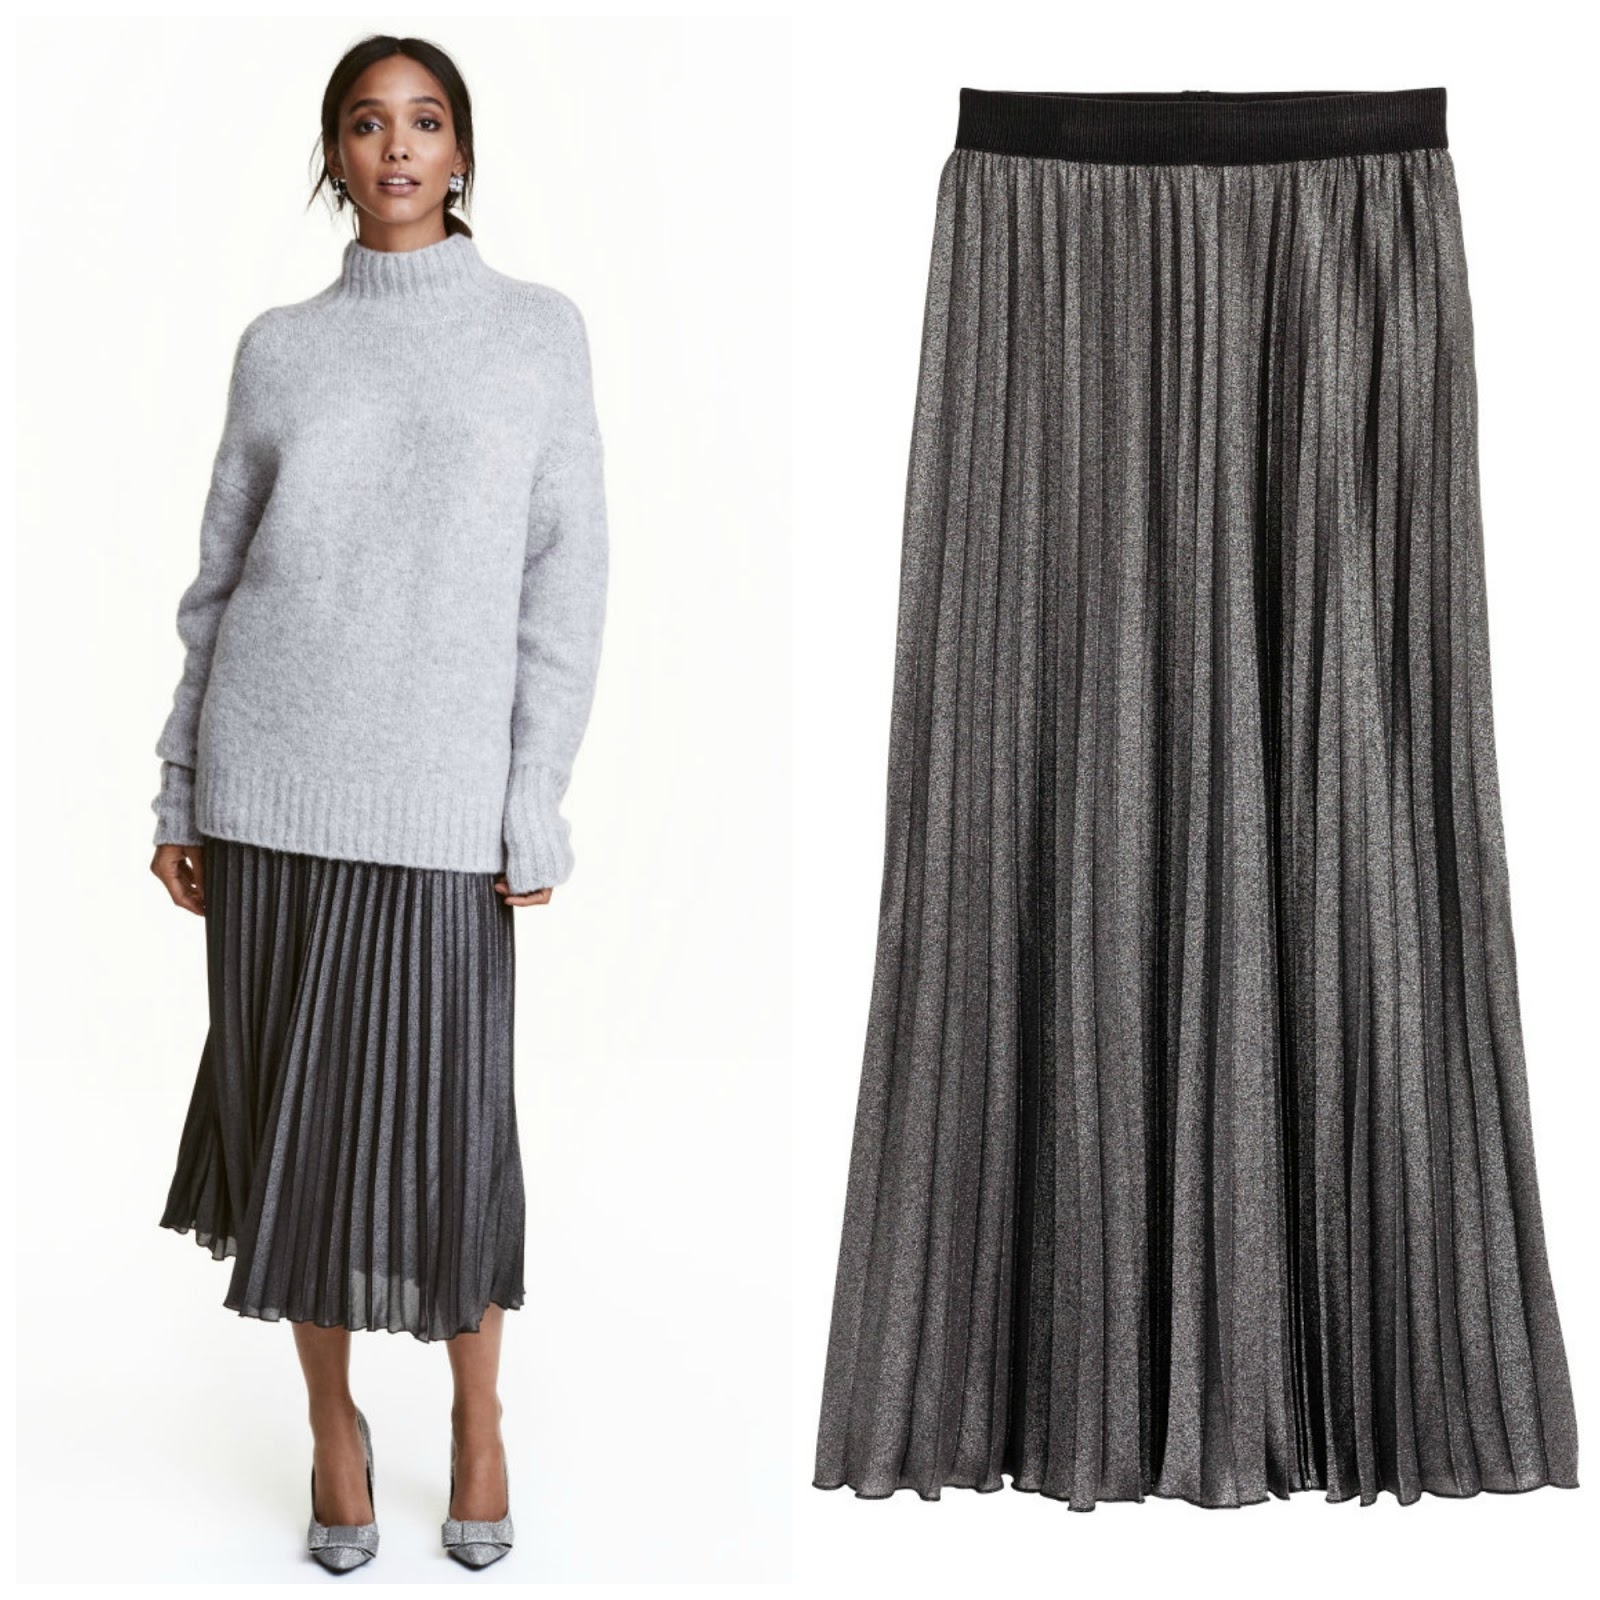 Pleated Skirts Under $50